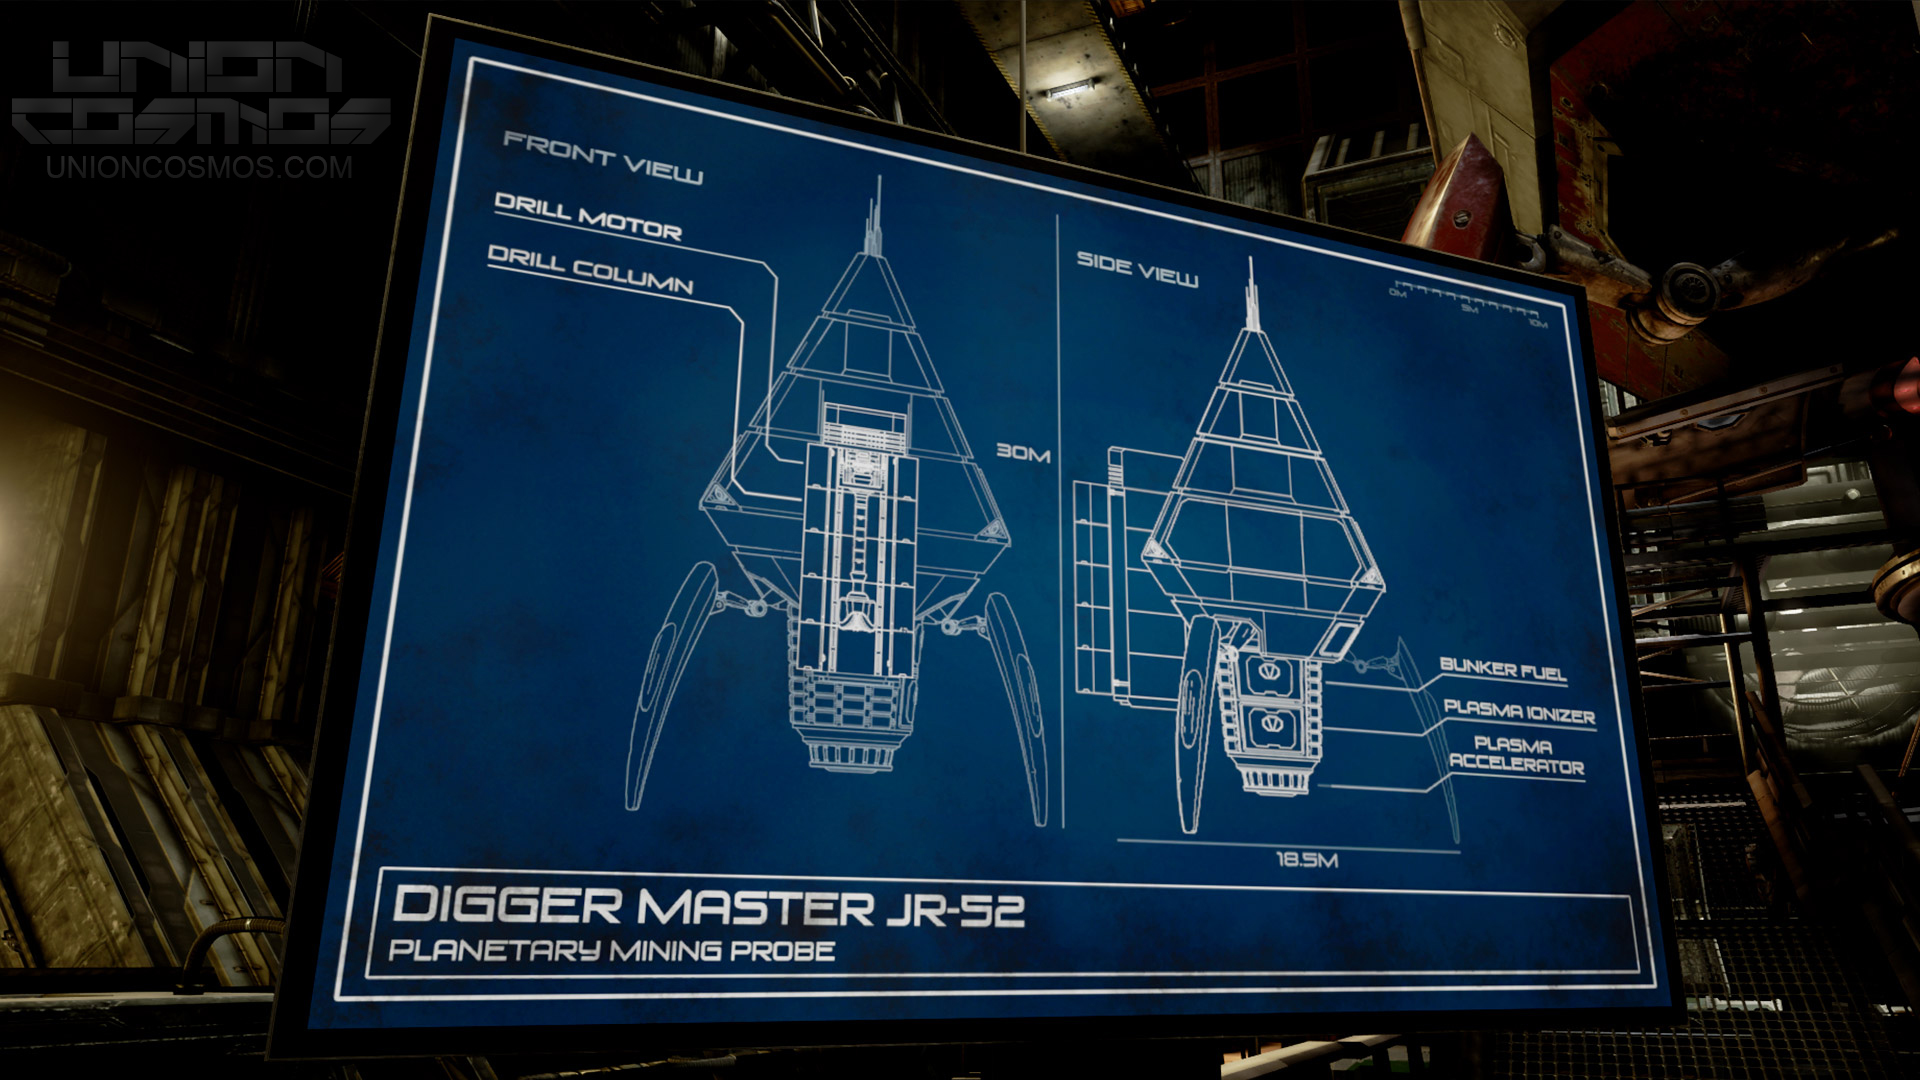 union-cosmos-far-beyond-a-space-odyssey-digger-master-map